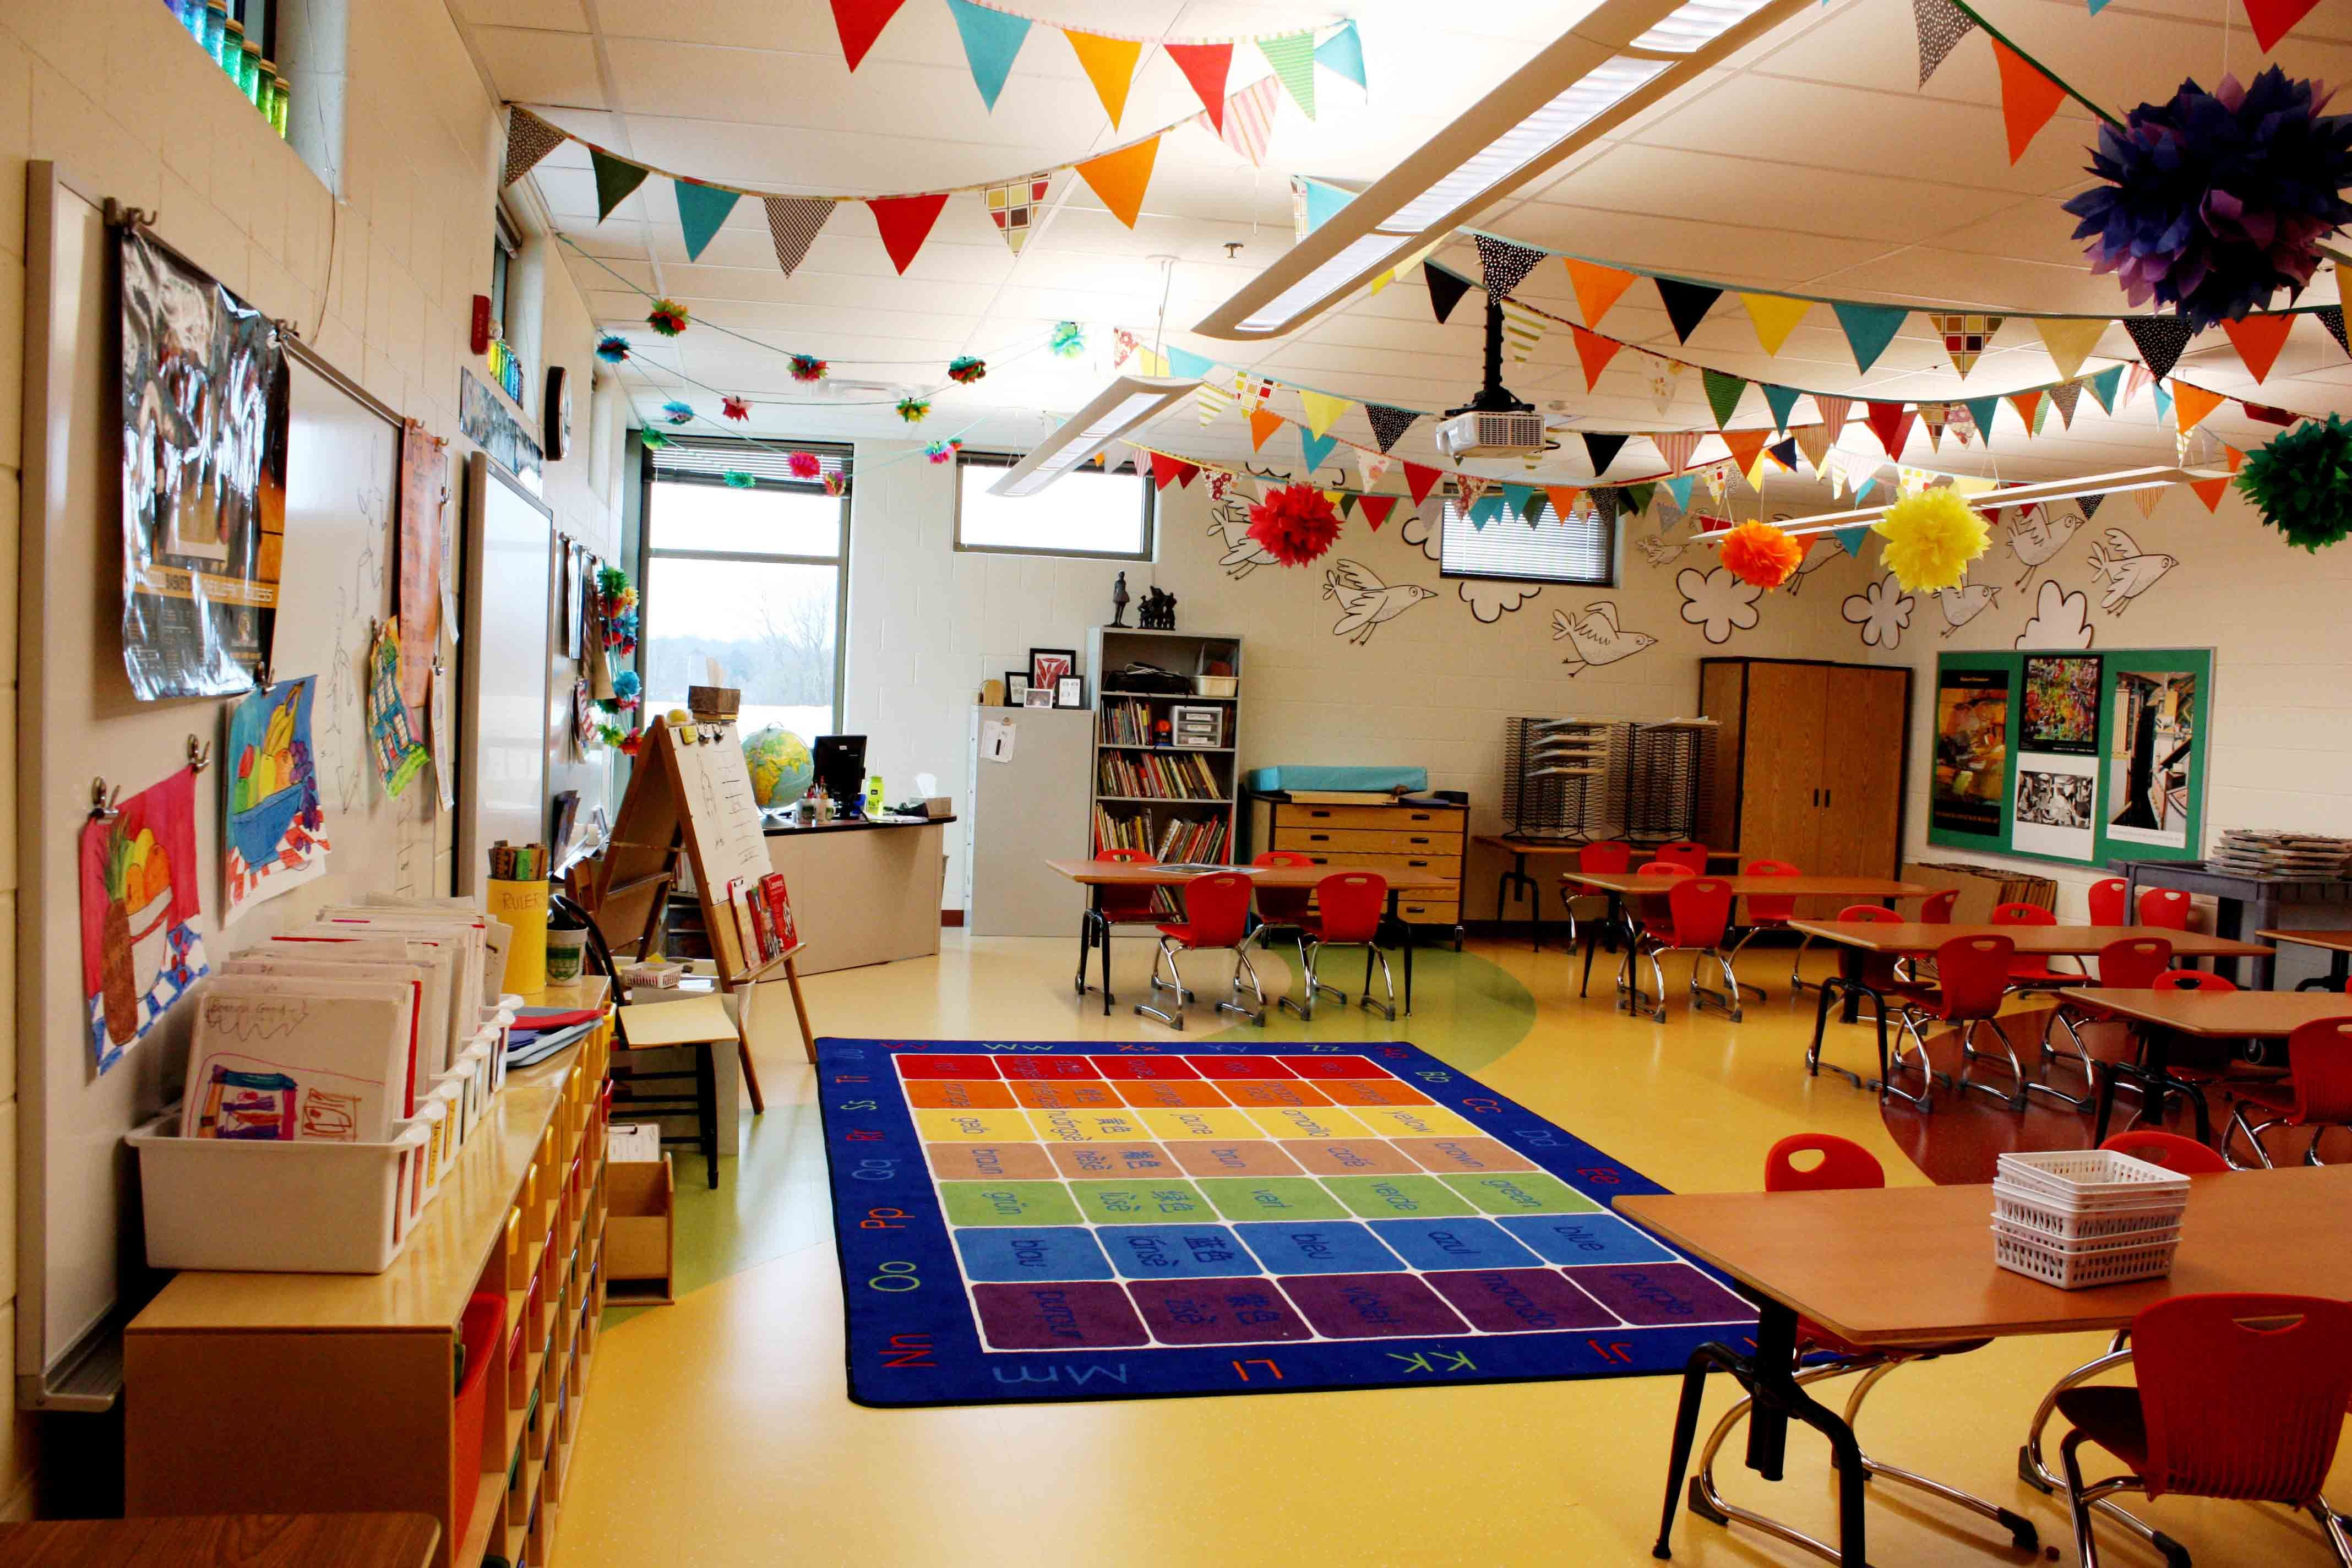 Classroom Decorations For Elementary : Classroom set up round elementary art education